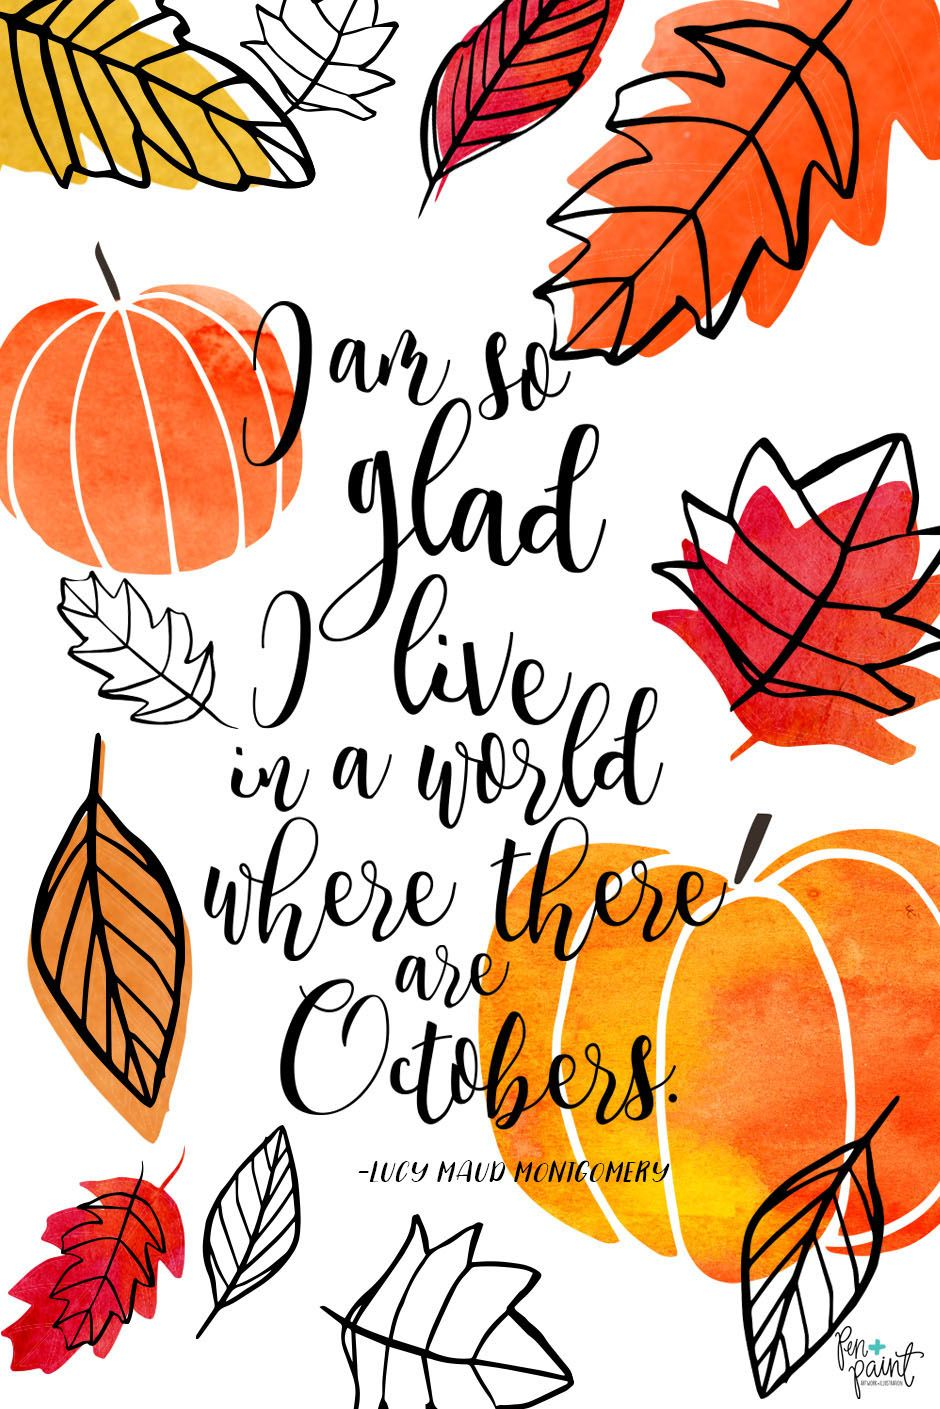 free october phone background and desktop background by pen and paint